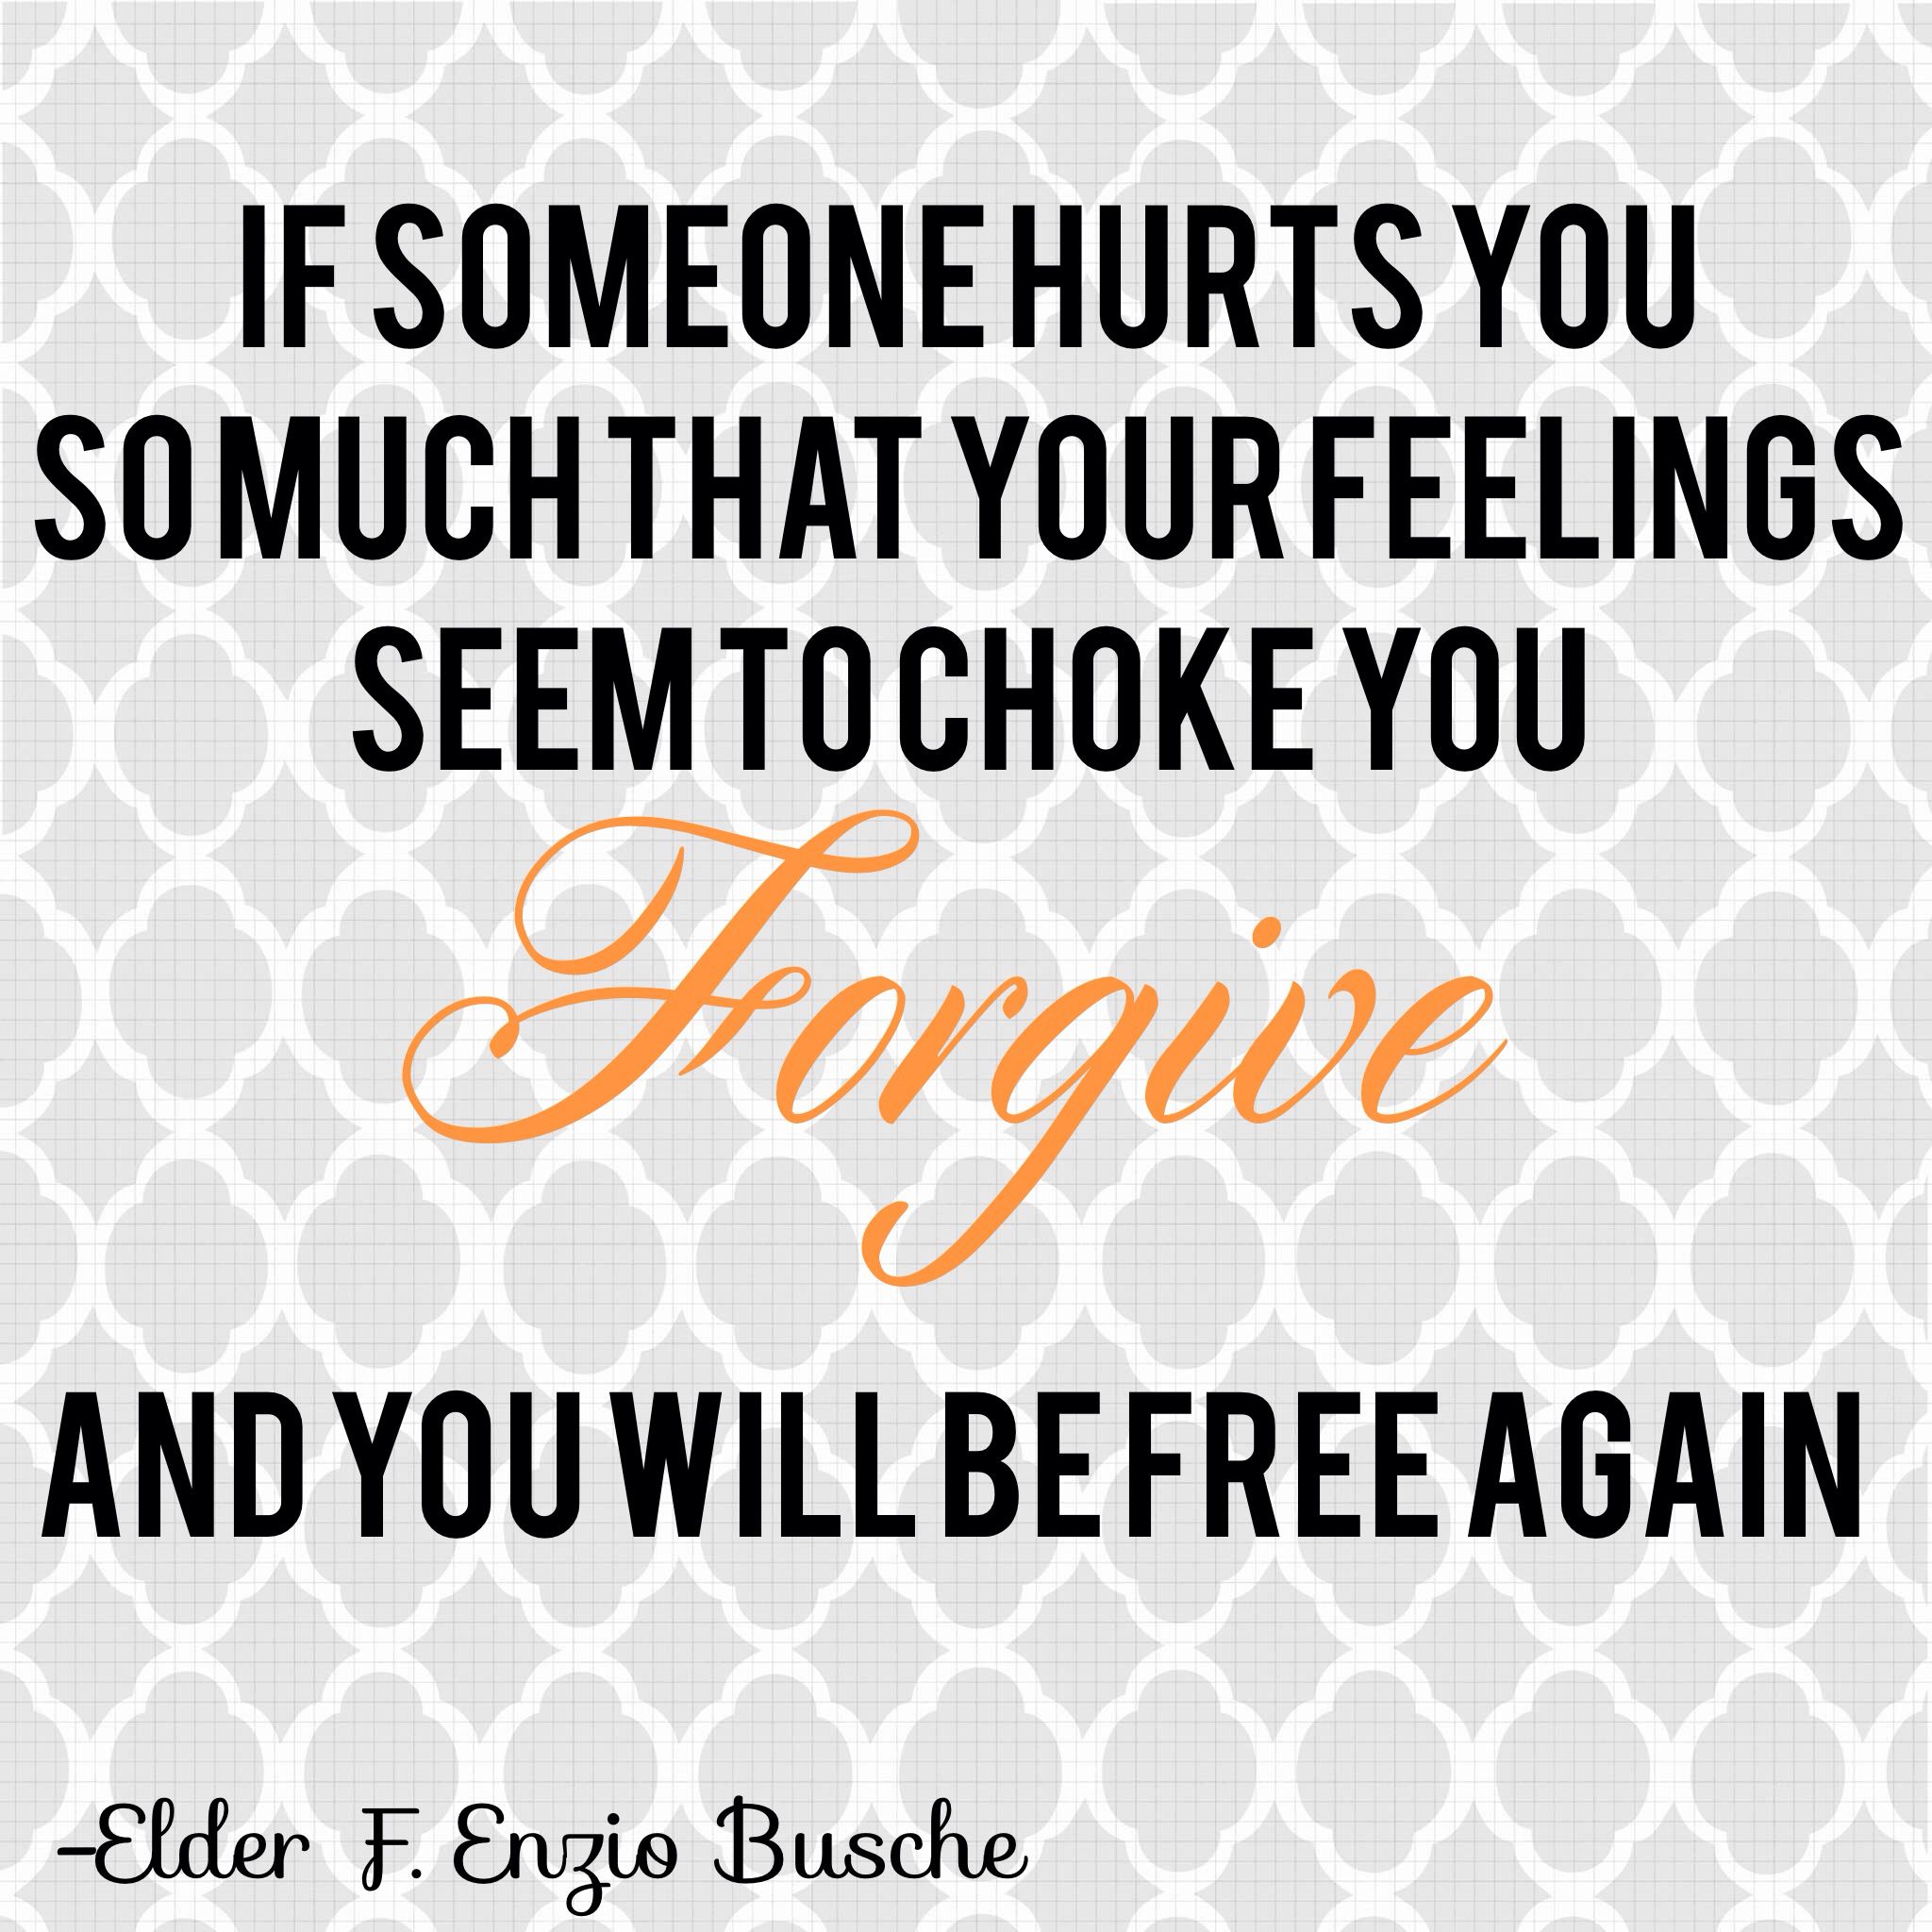 If someone hurts you so much that your feelings seem to